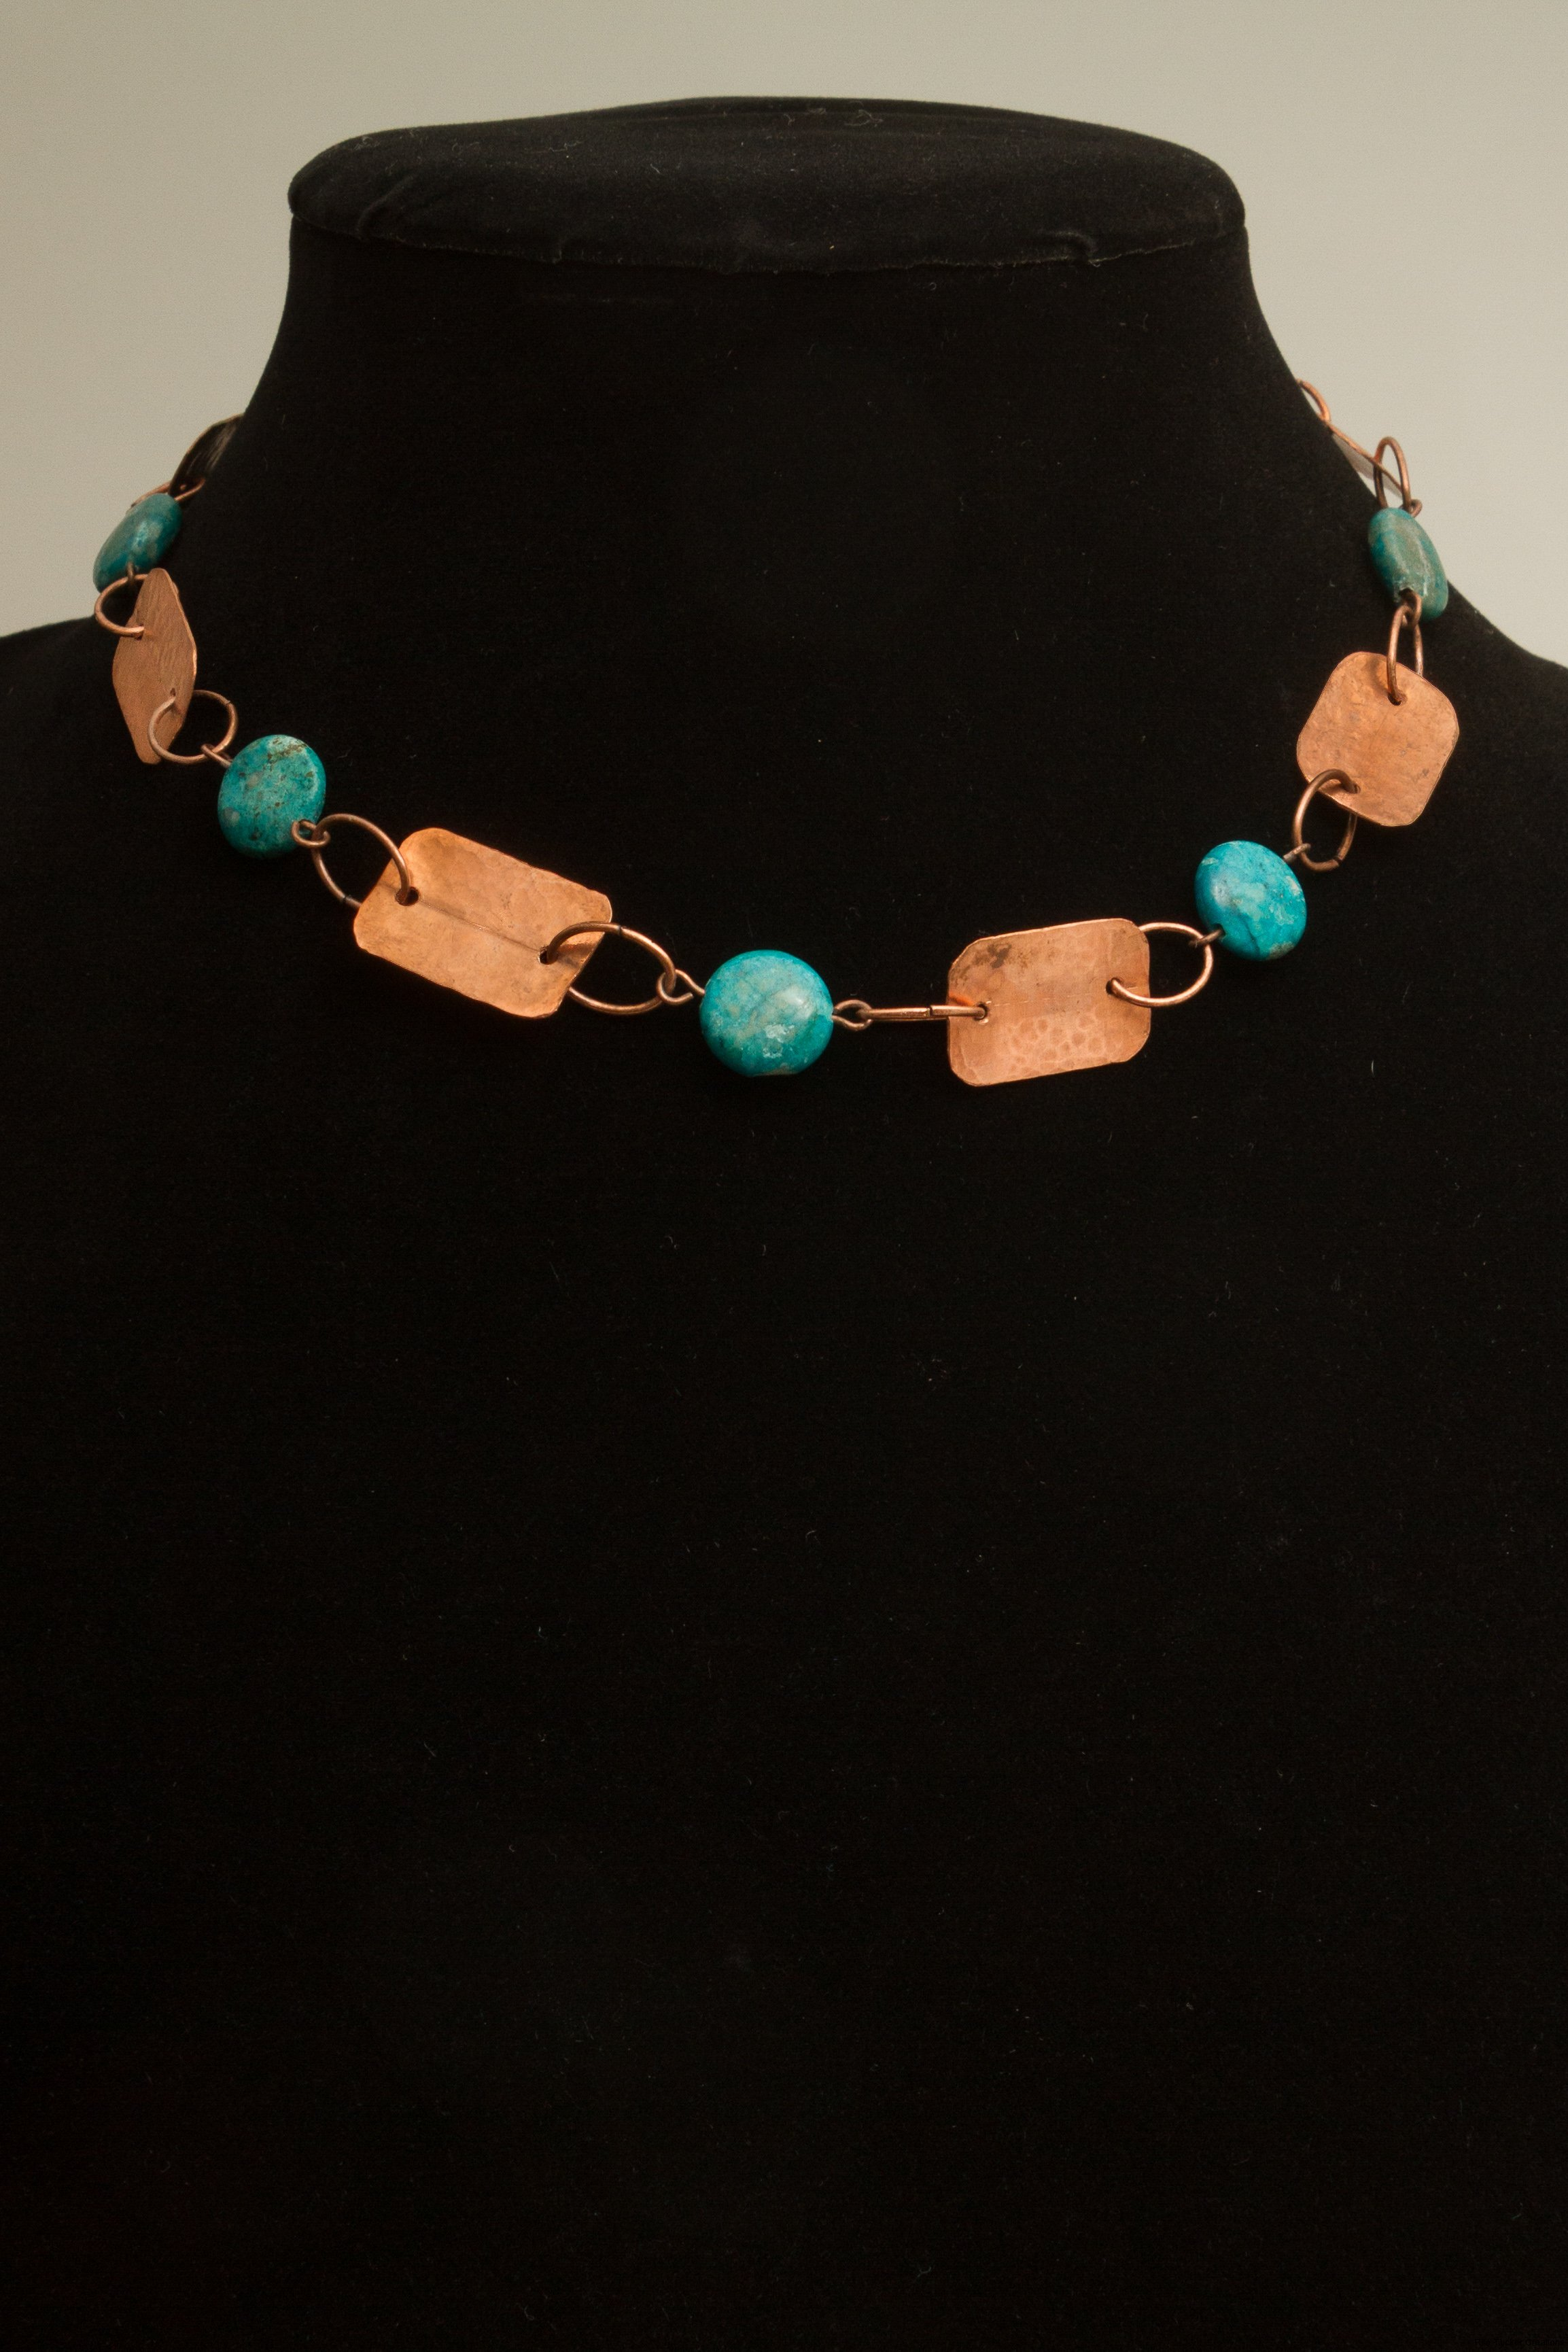 copper rectangles connected by turquoise beads